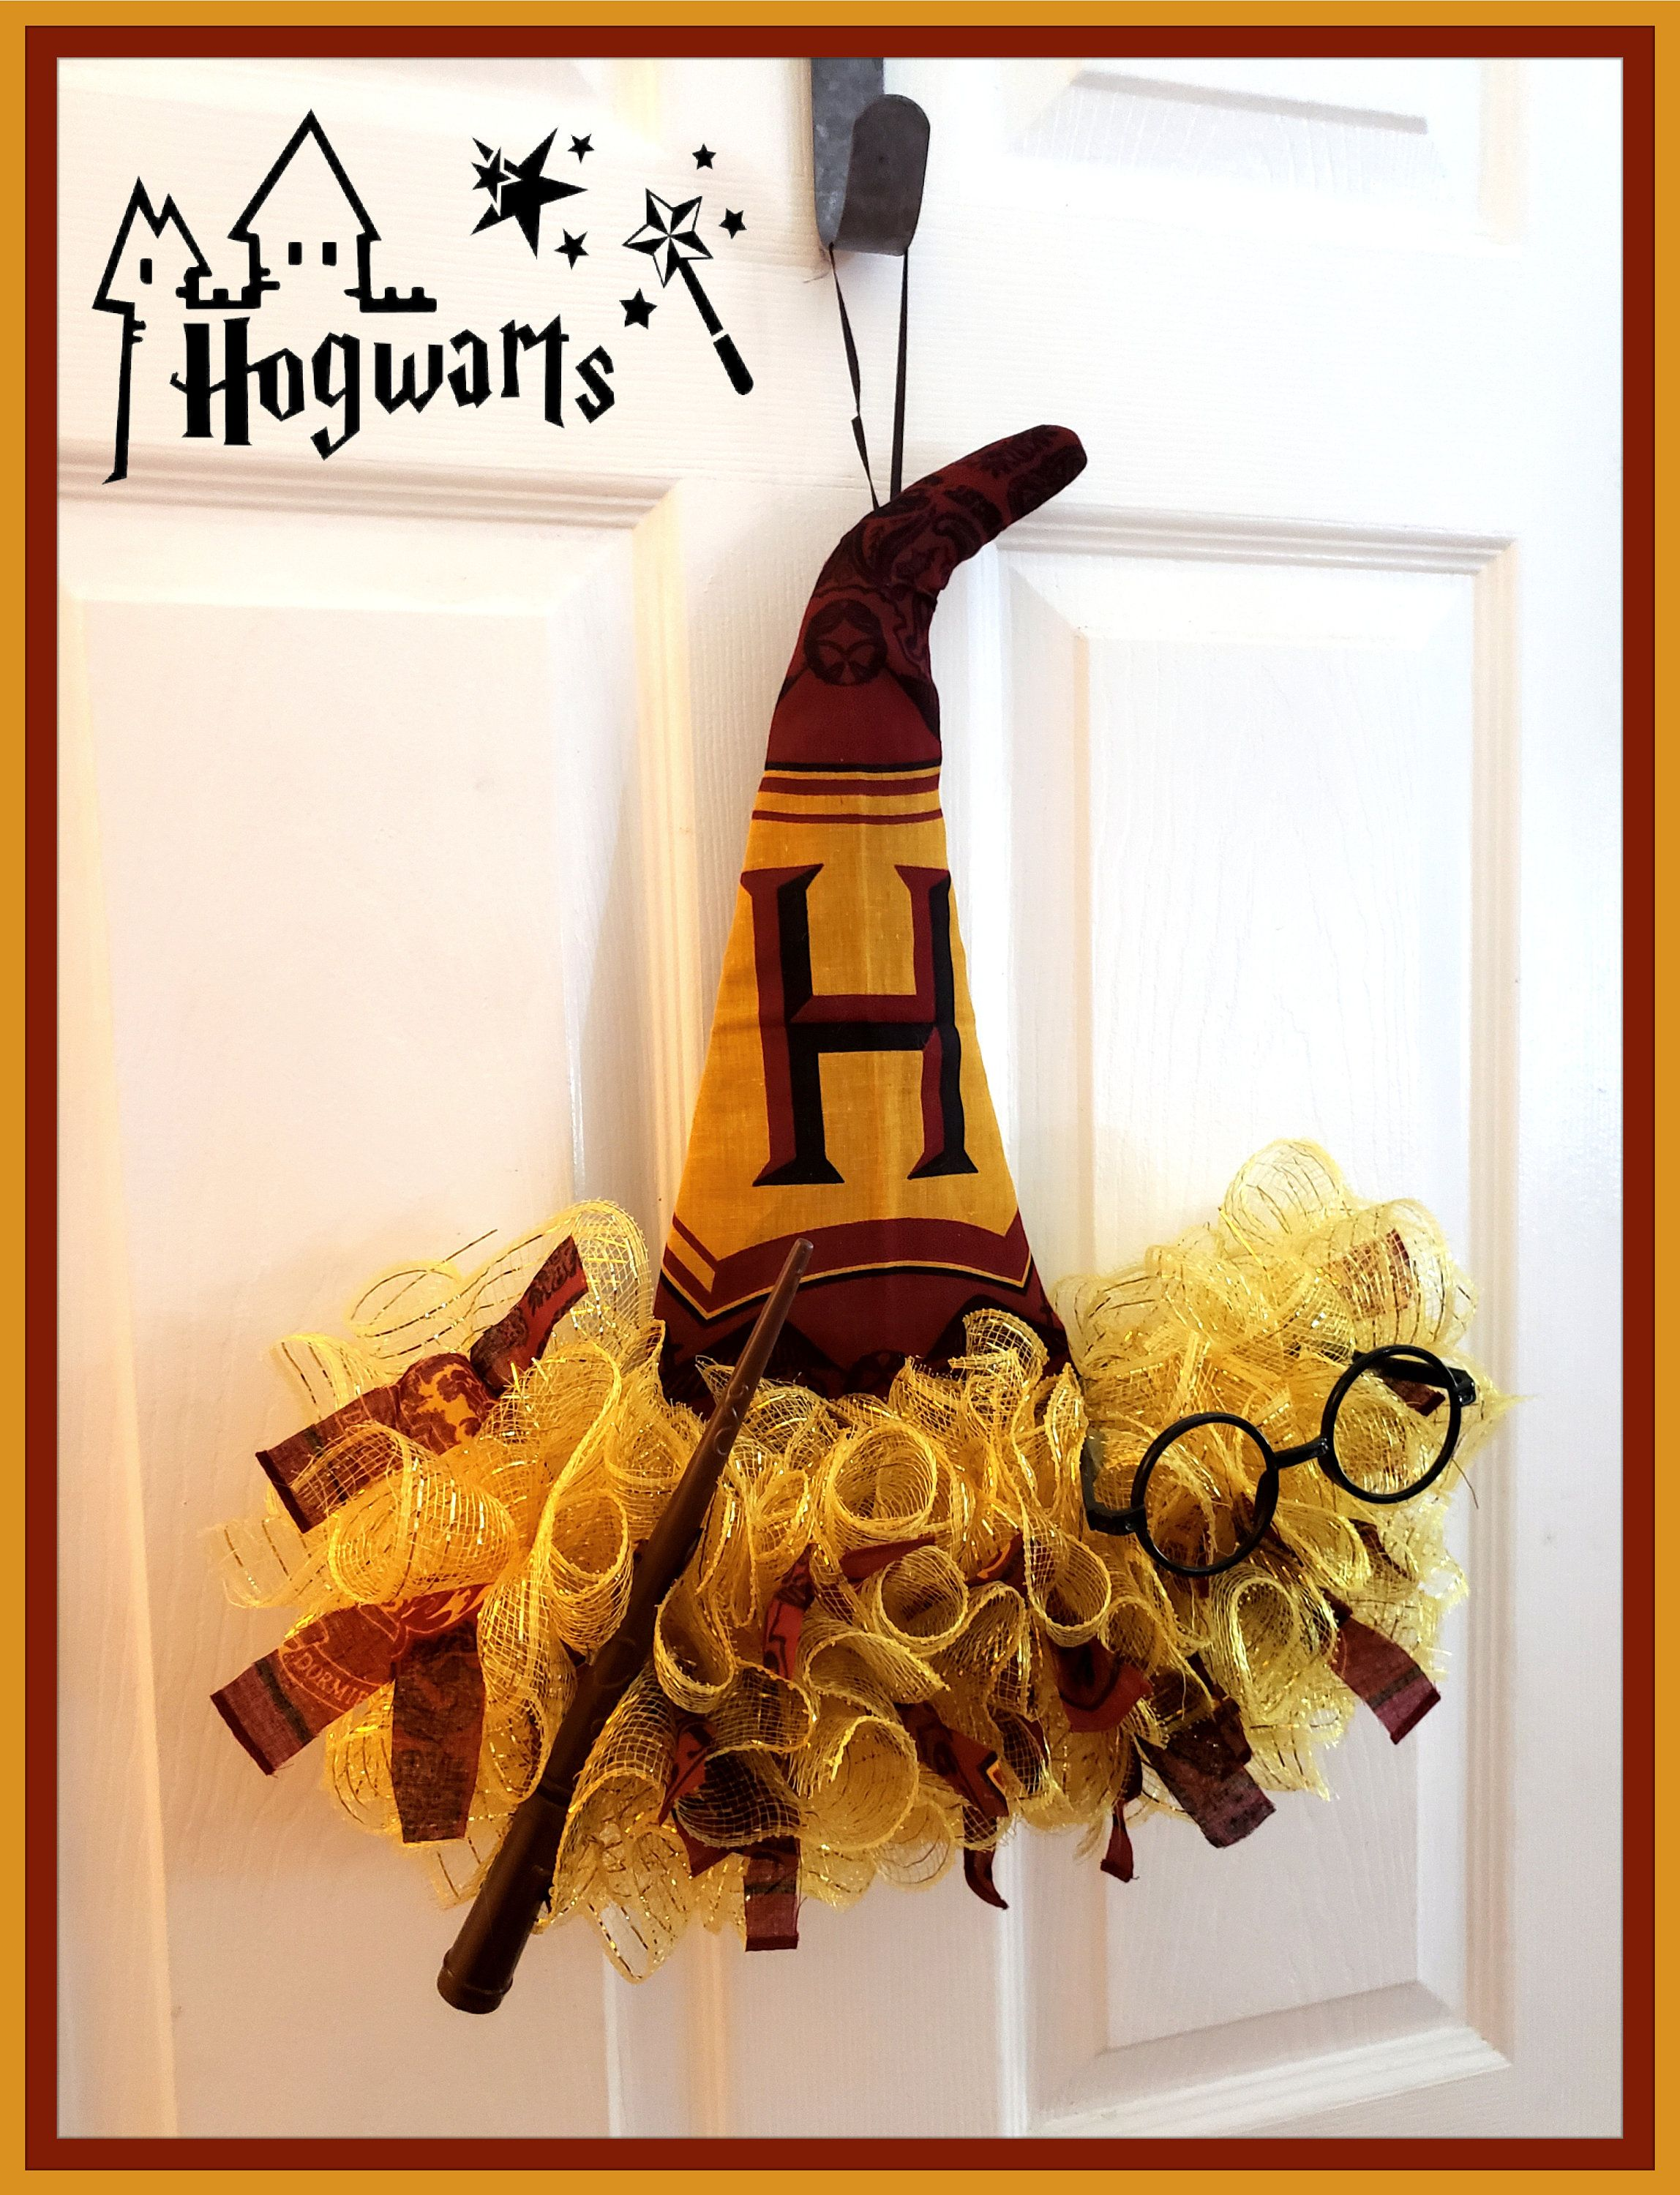 Bestseller harry potter wreath harry pottery gifts deathly